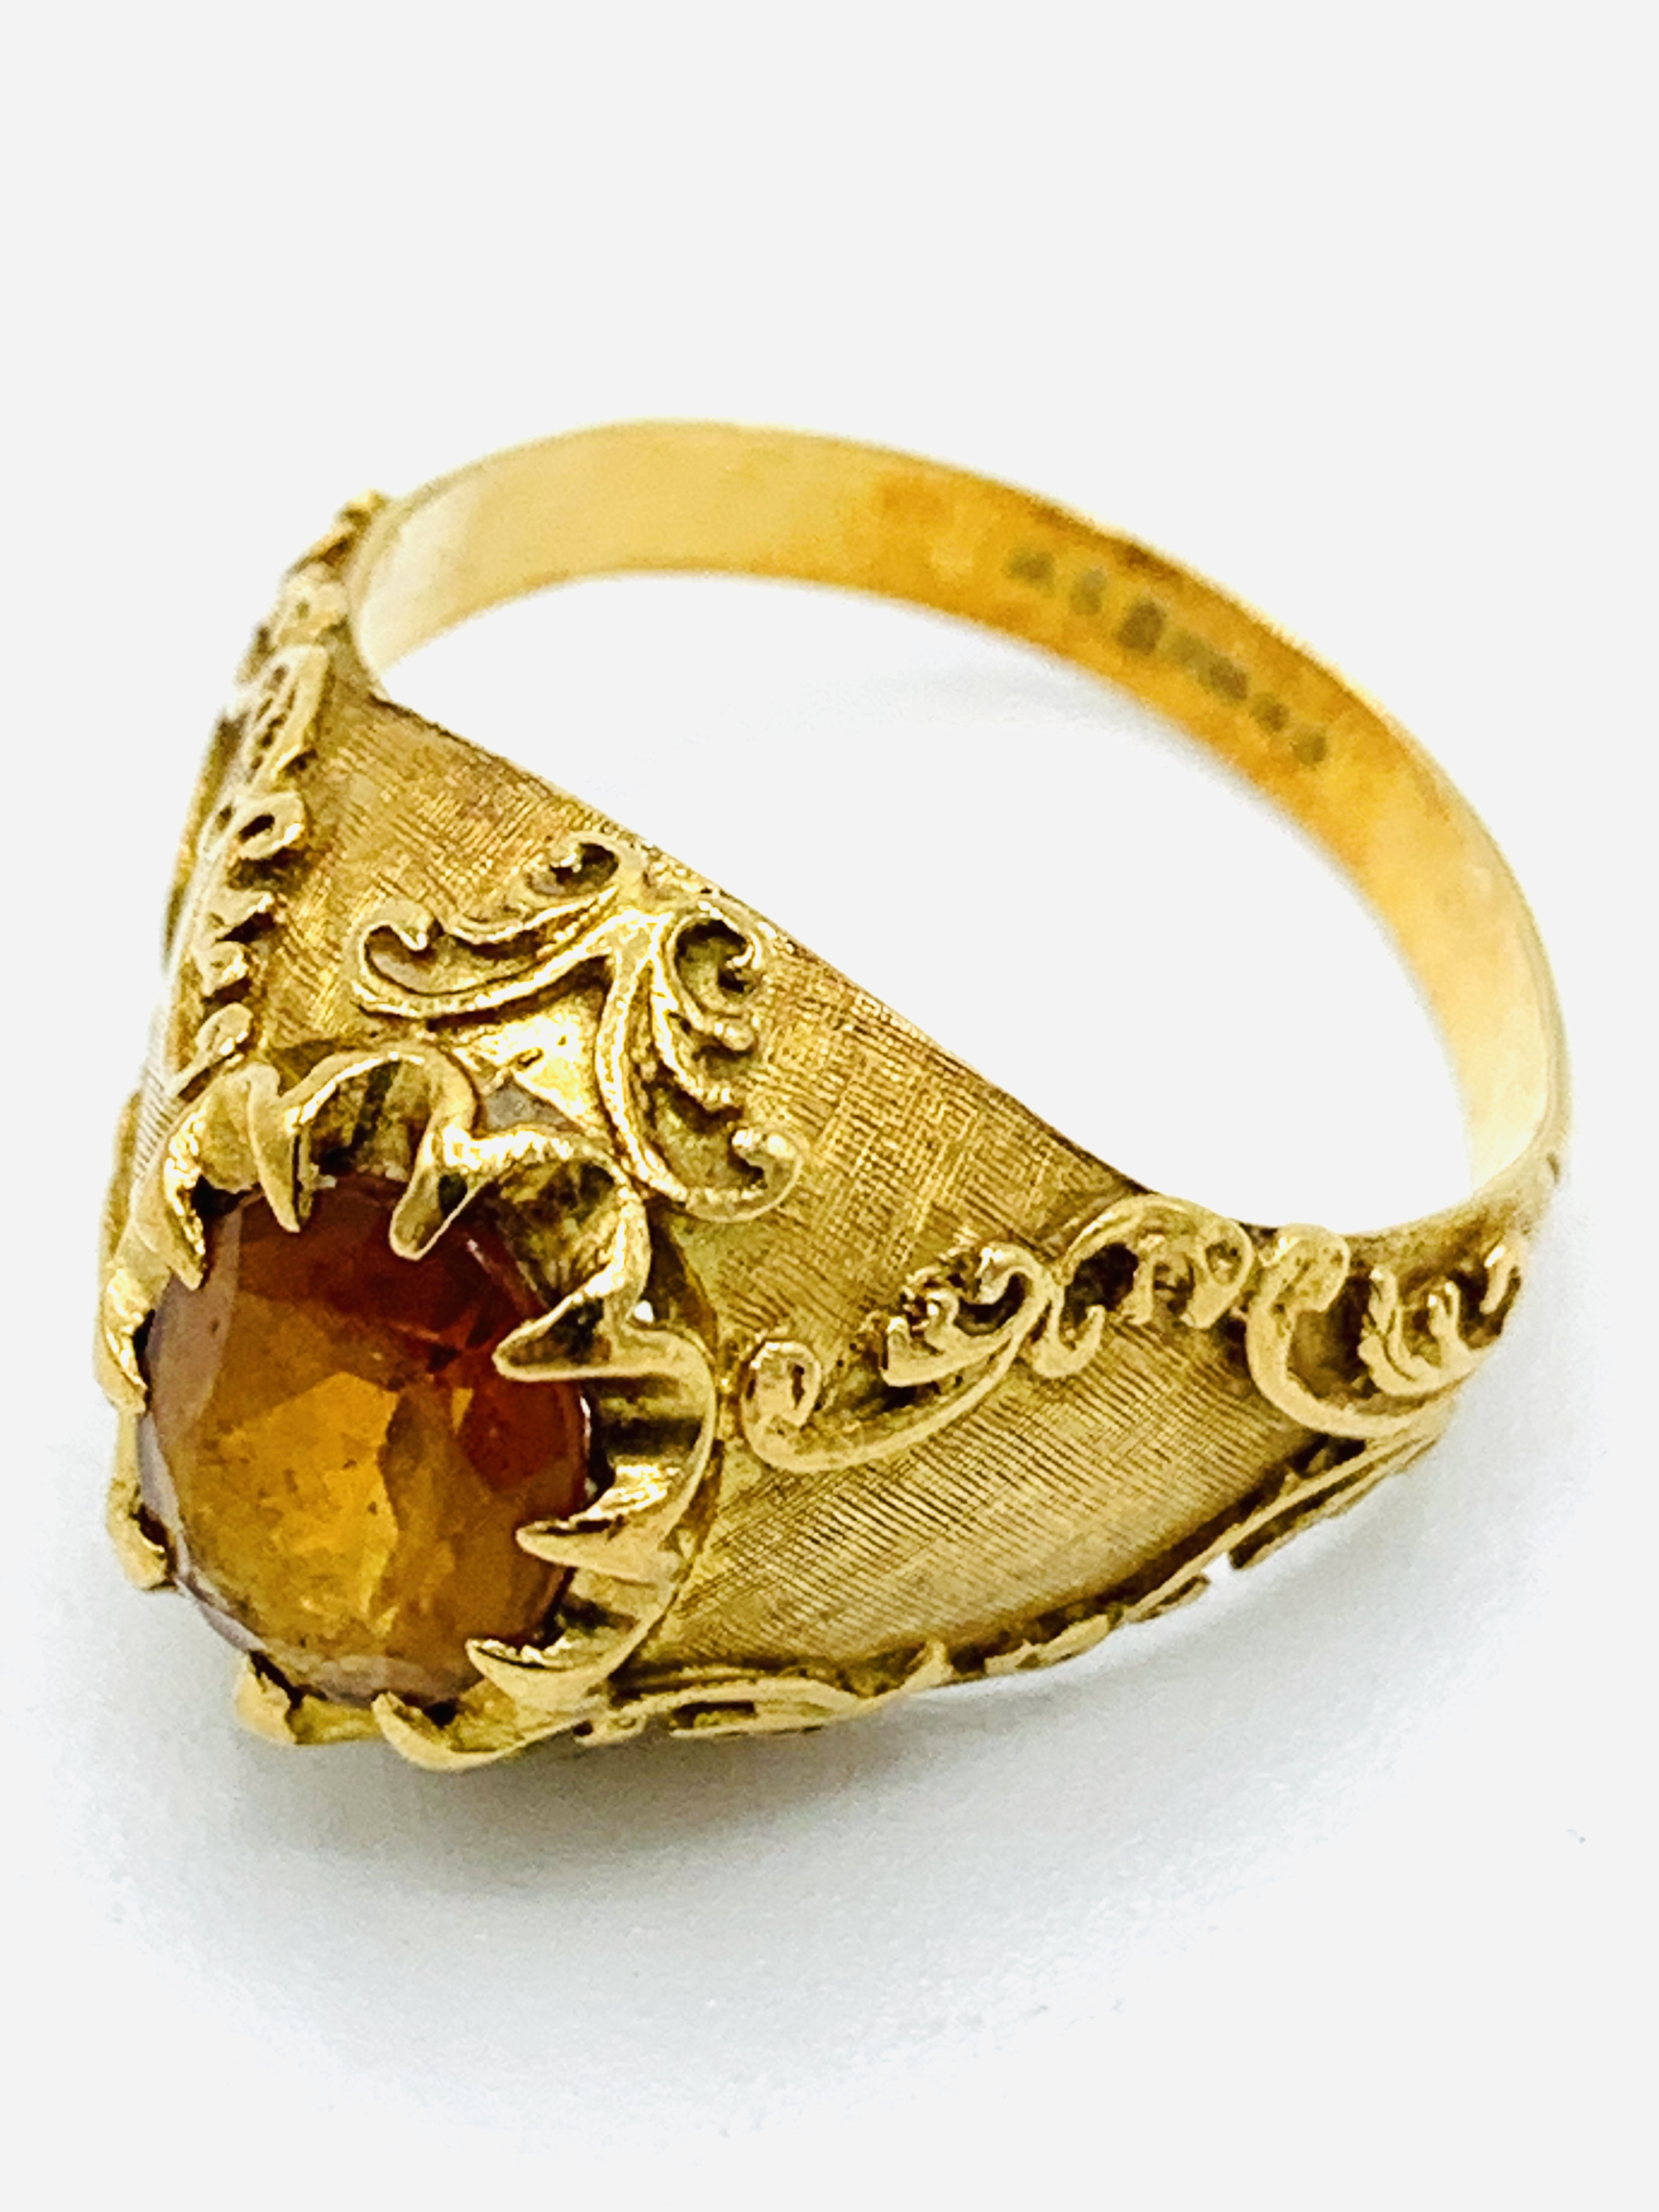 18ct gold and citrine ring and a yellow metal and yellow stone ring